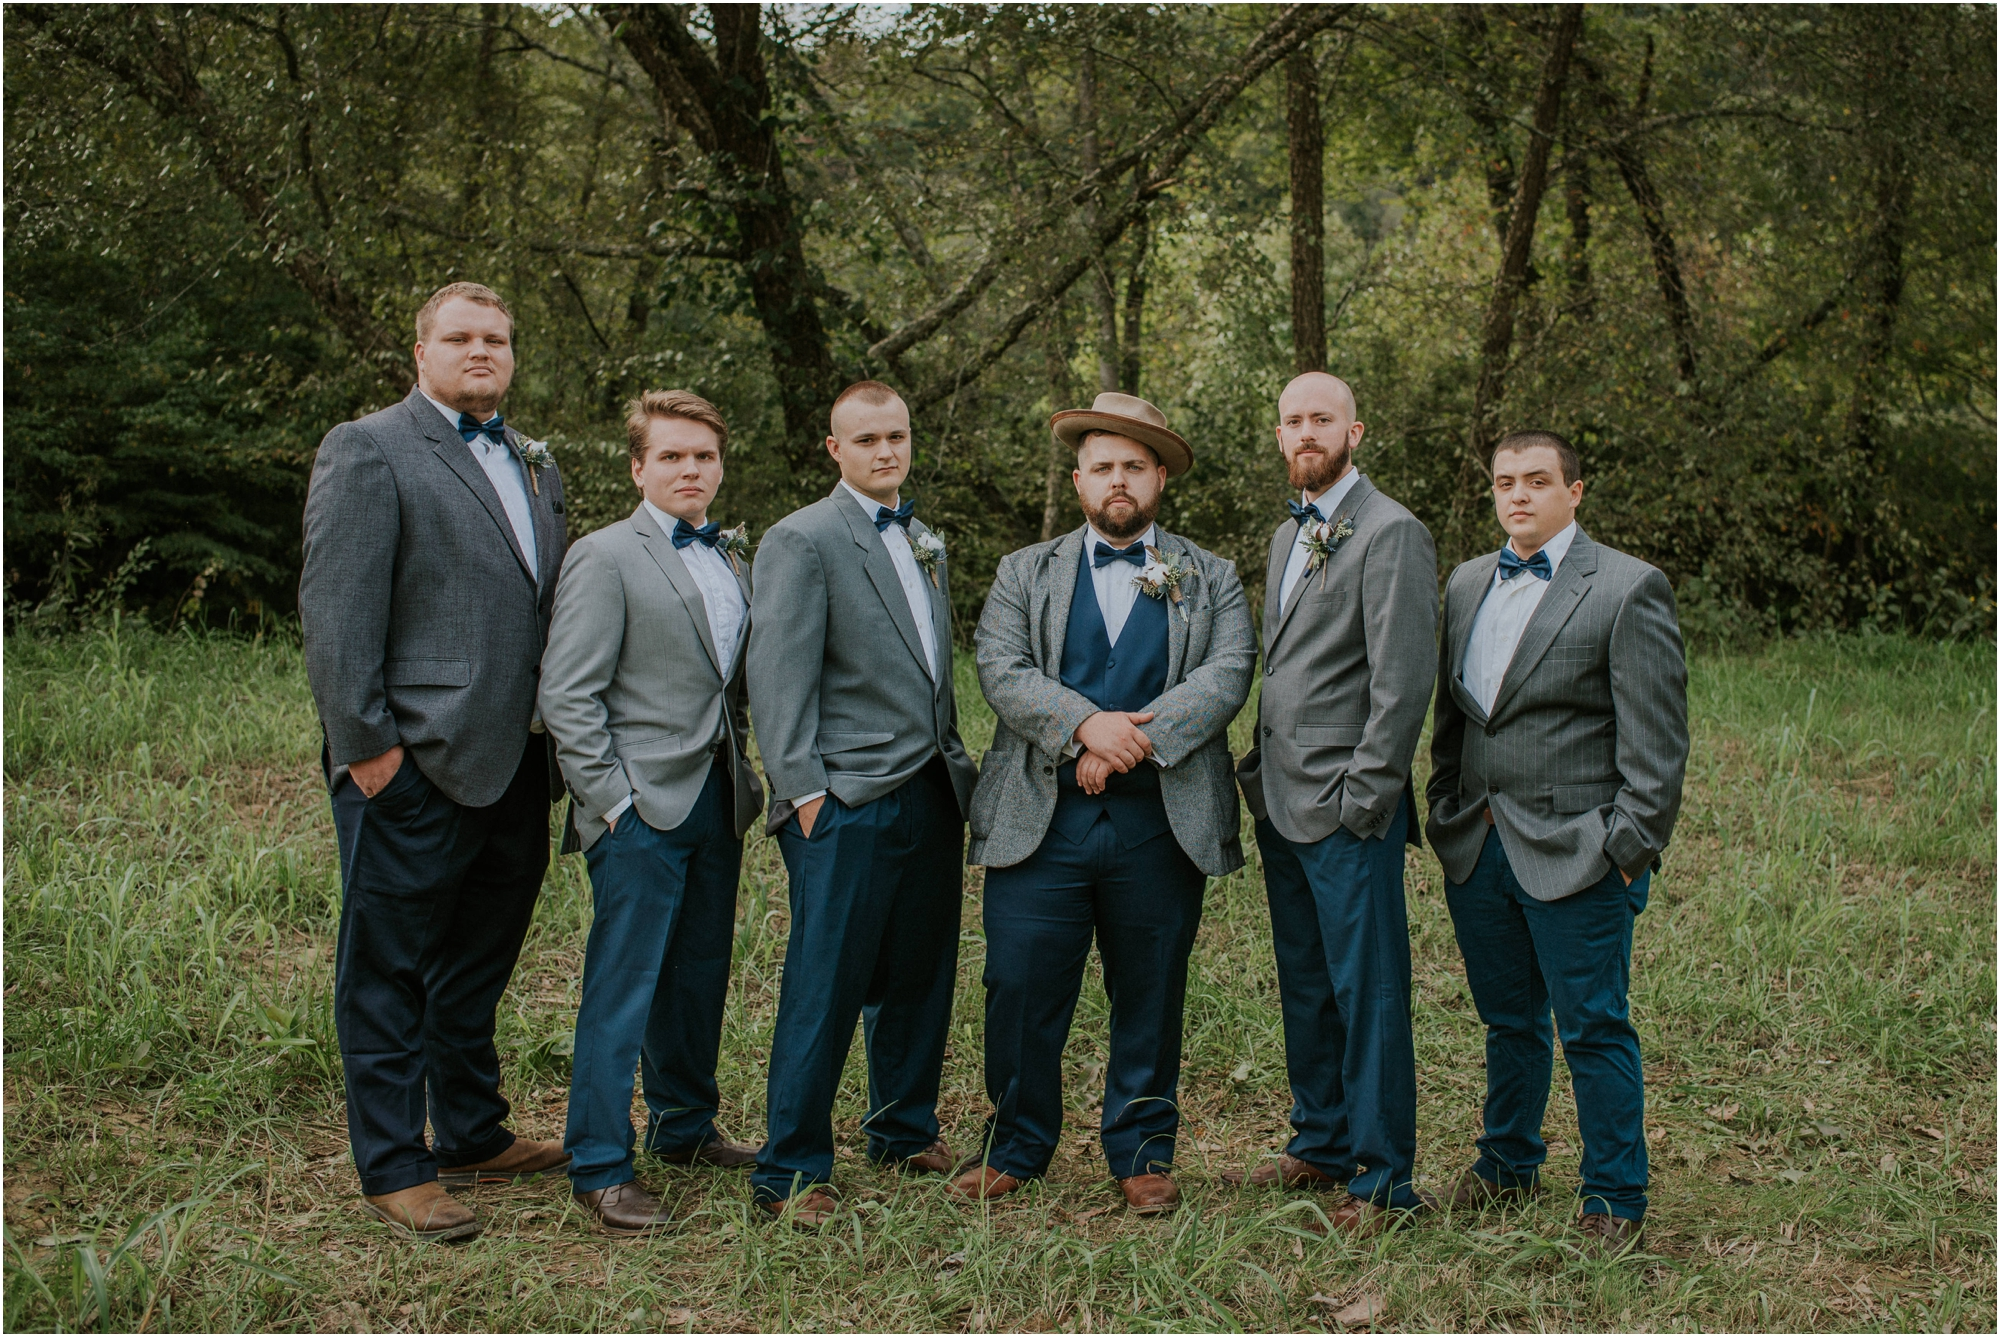 caryville-robbins-middle-tennessee-intimate-cozy-fall-navy-rustic-backyard-wedding_0060.jpg